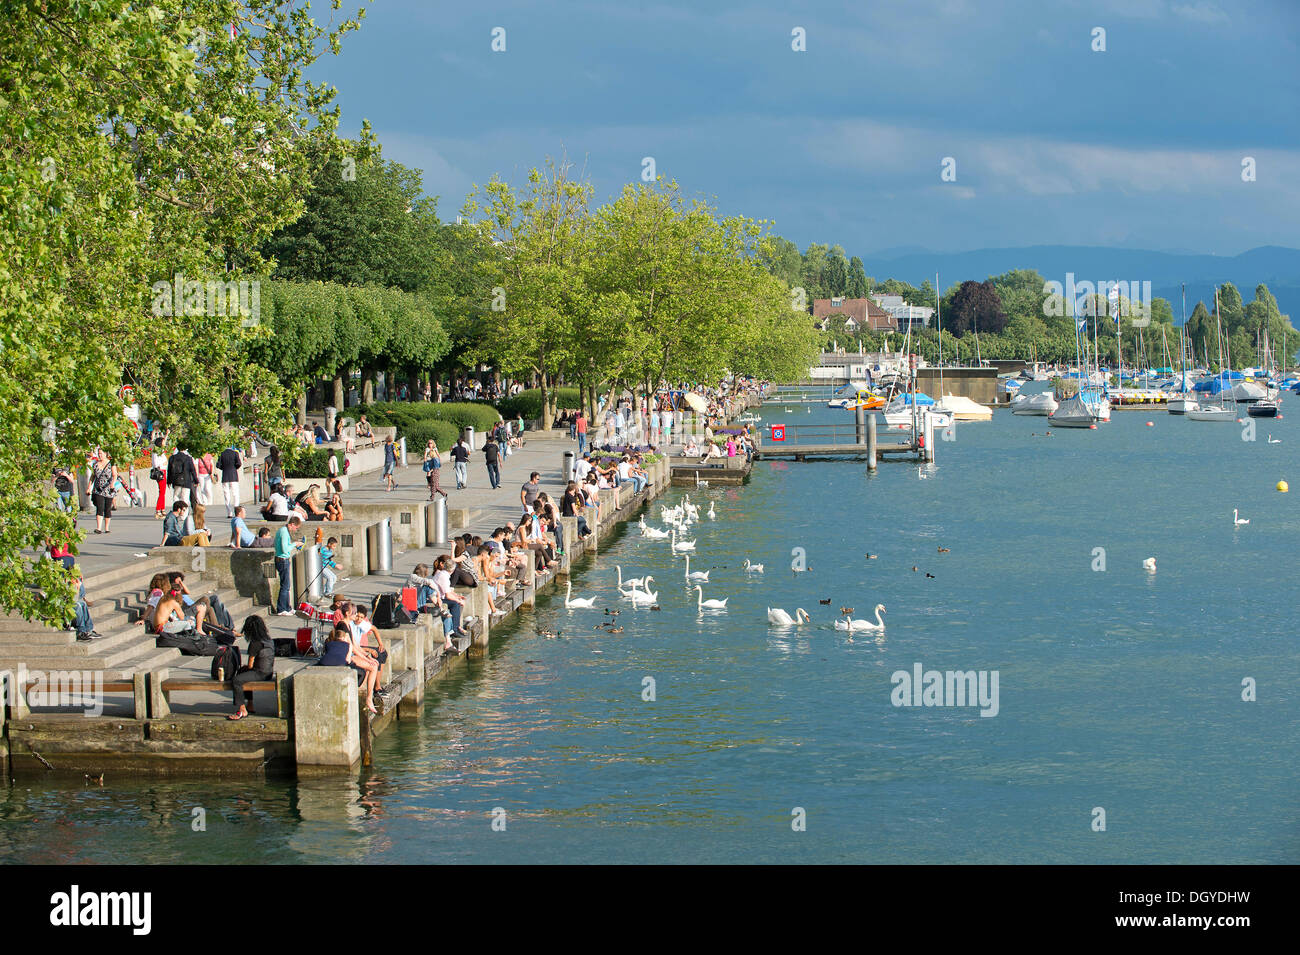 Lake Zurich, Utoquai quay, Zurich, Switzerland, Europe - Stock Image